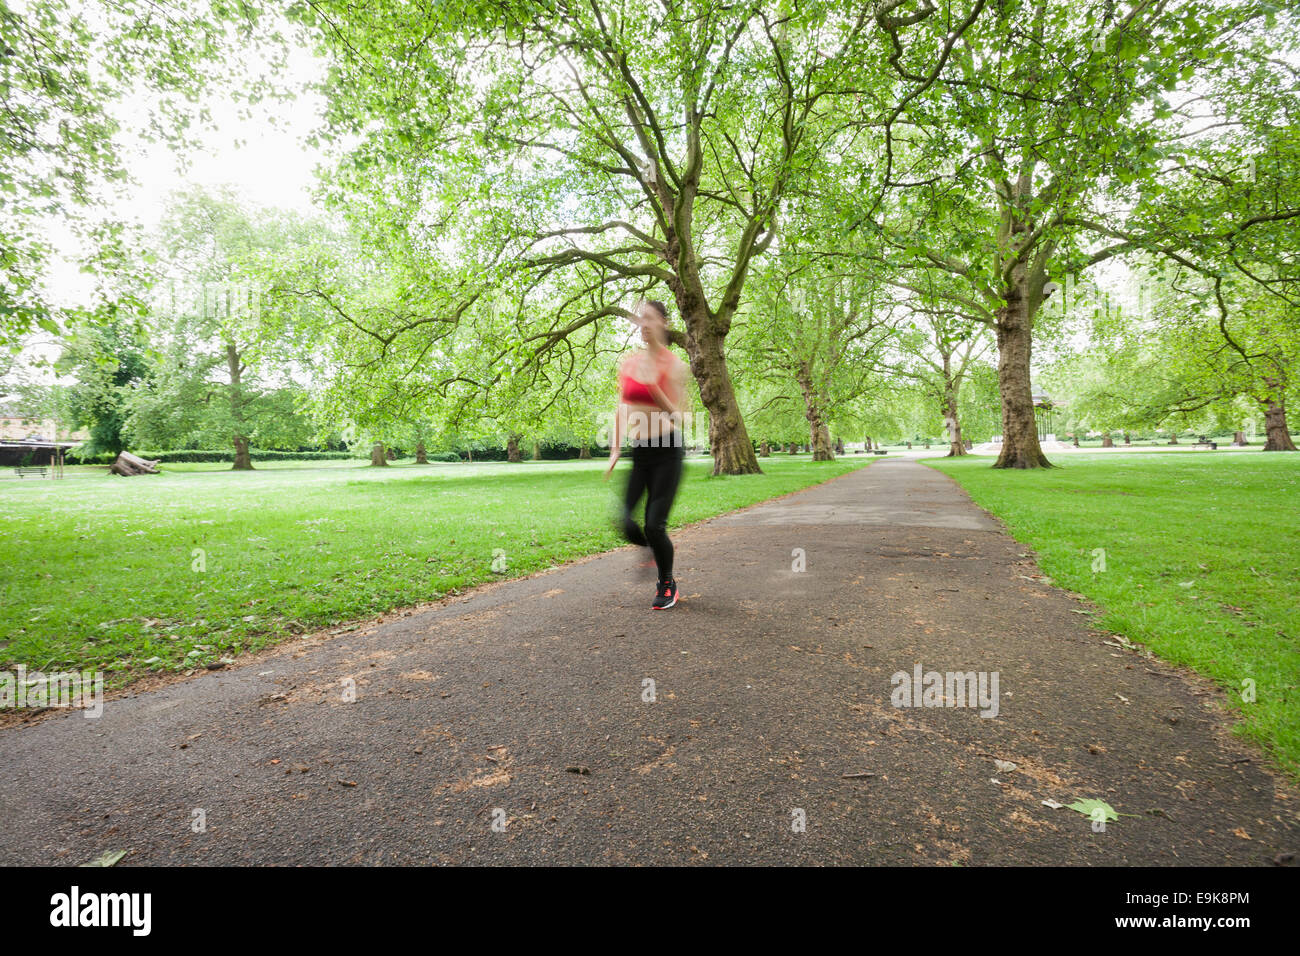 Blurred motion of woman jogging in park - Stock Image